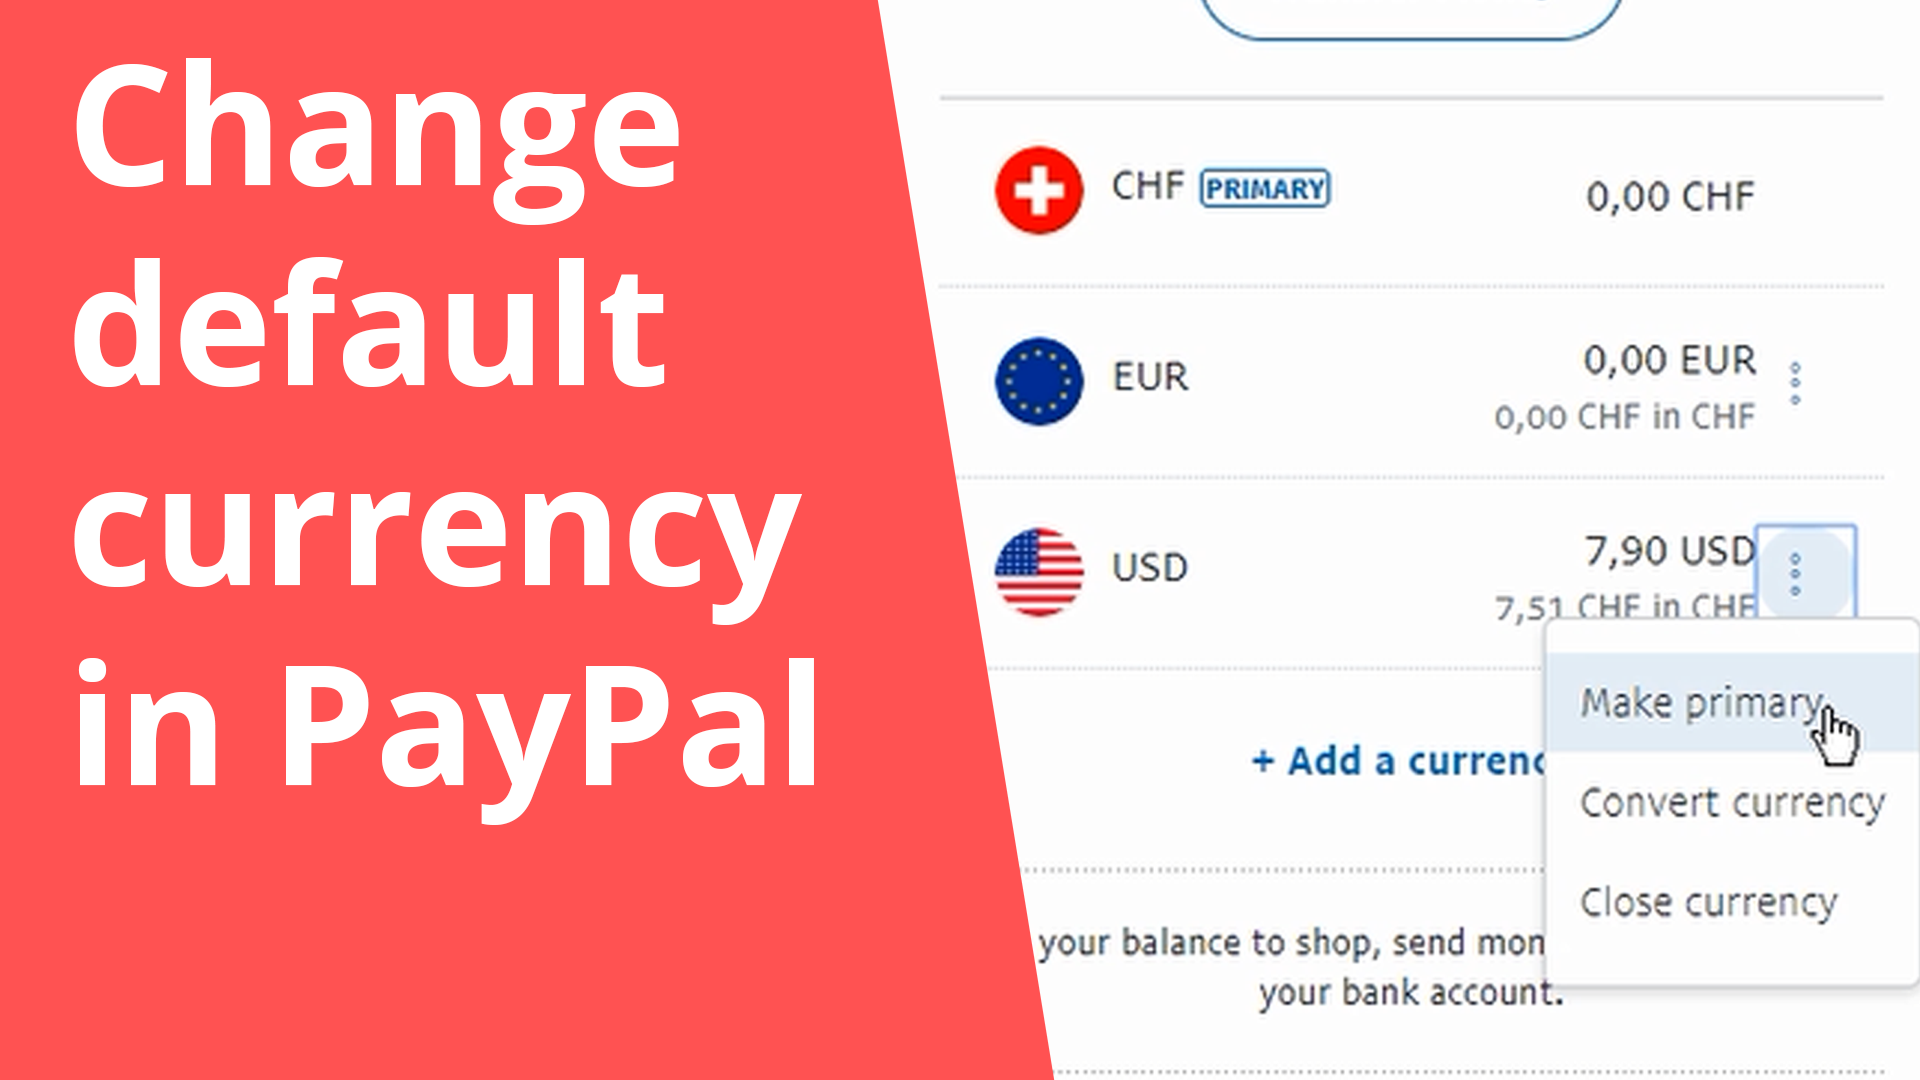 Change default currency in PayPal